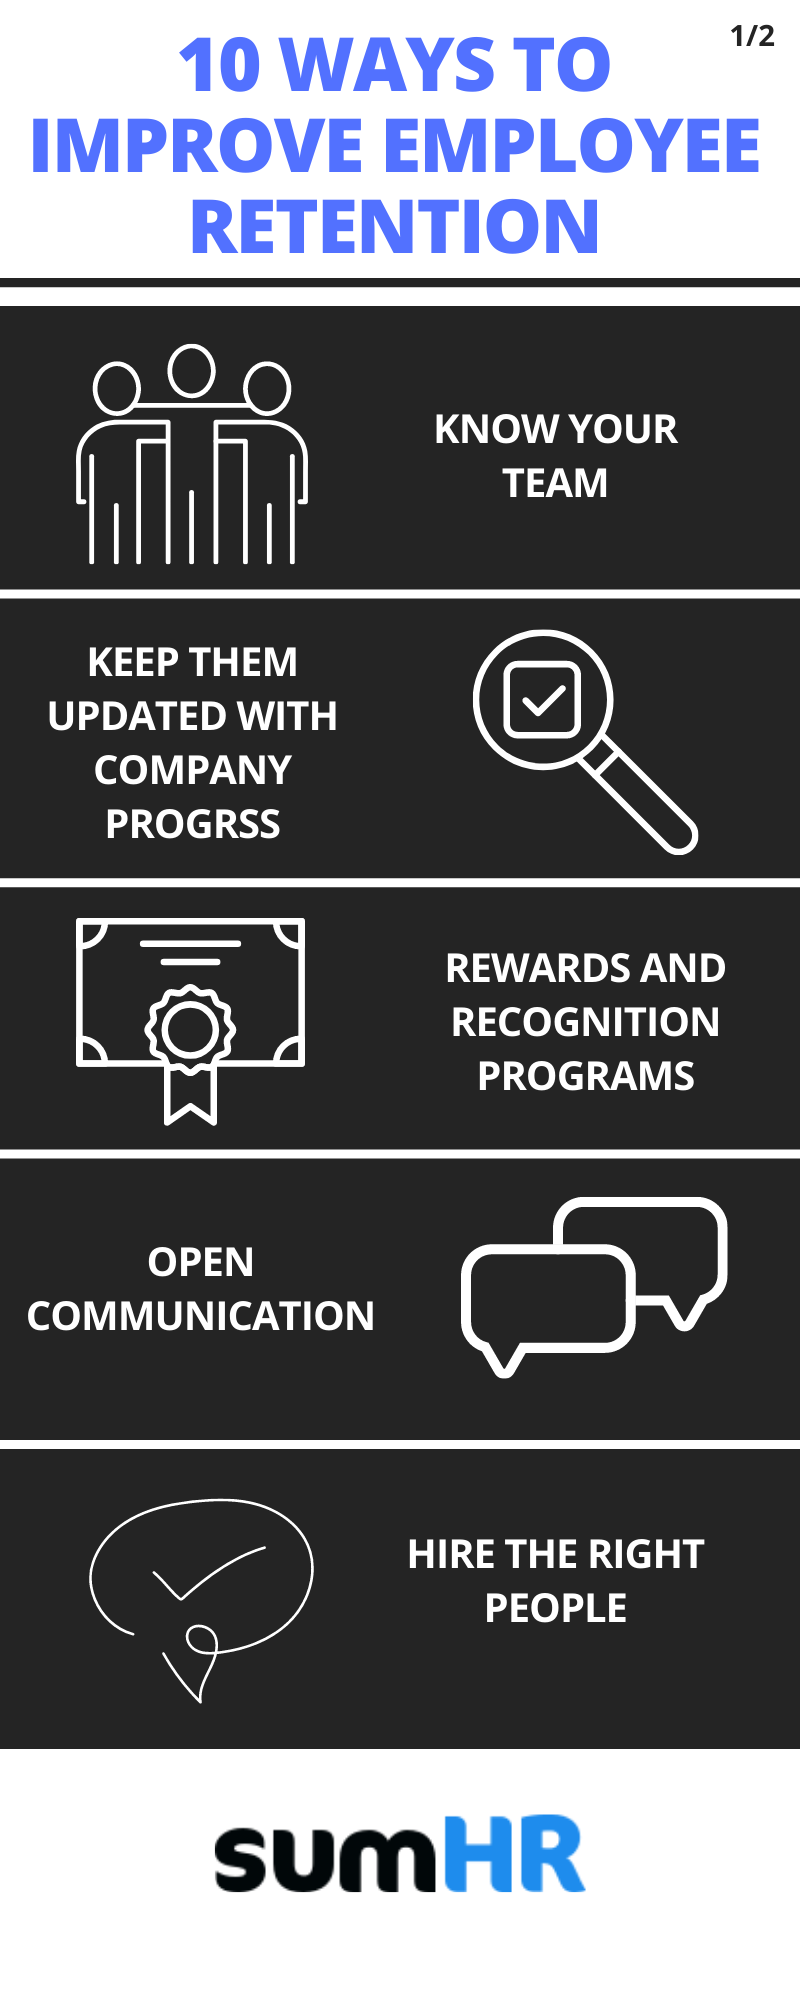 5 helpful tips to improve your employee retention